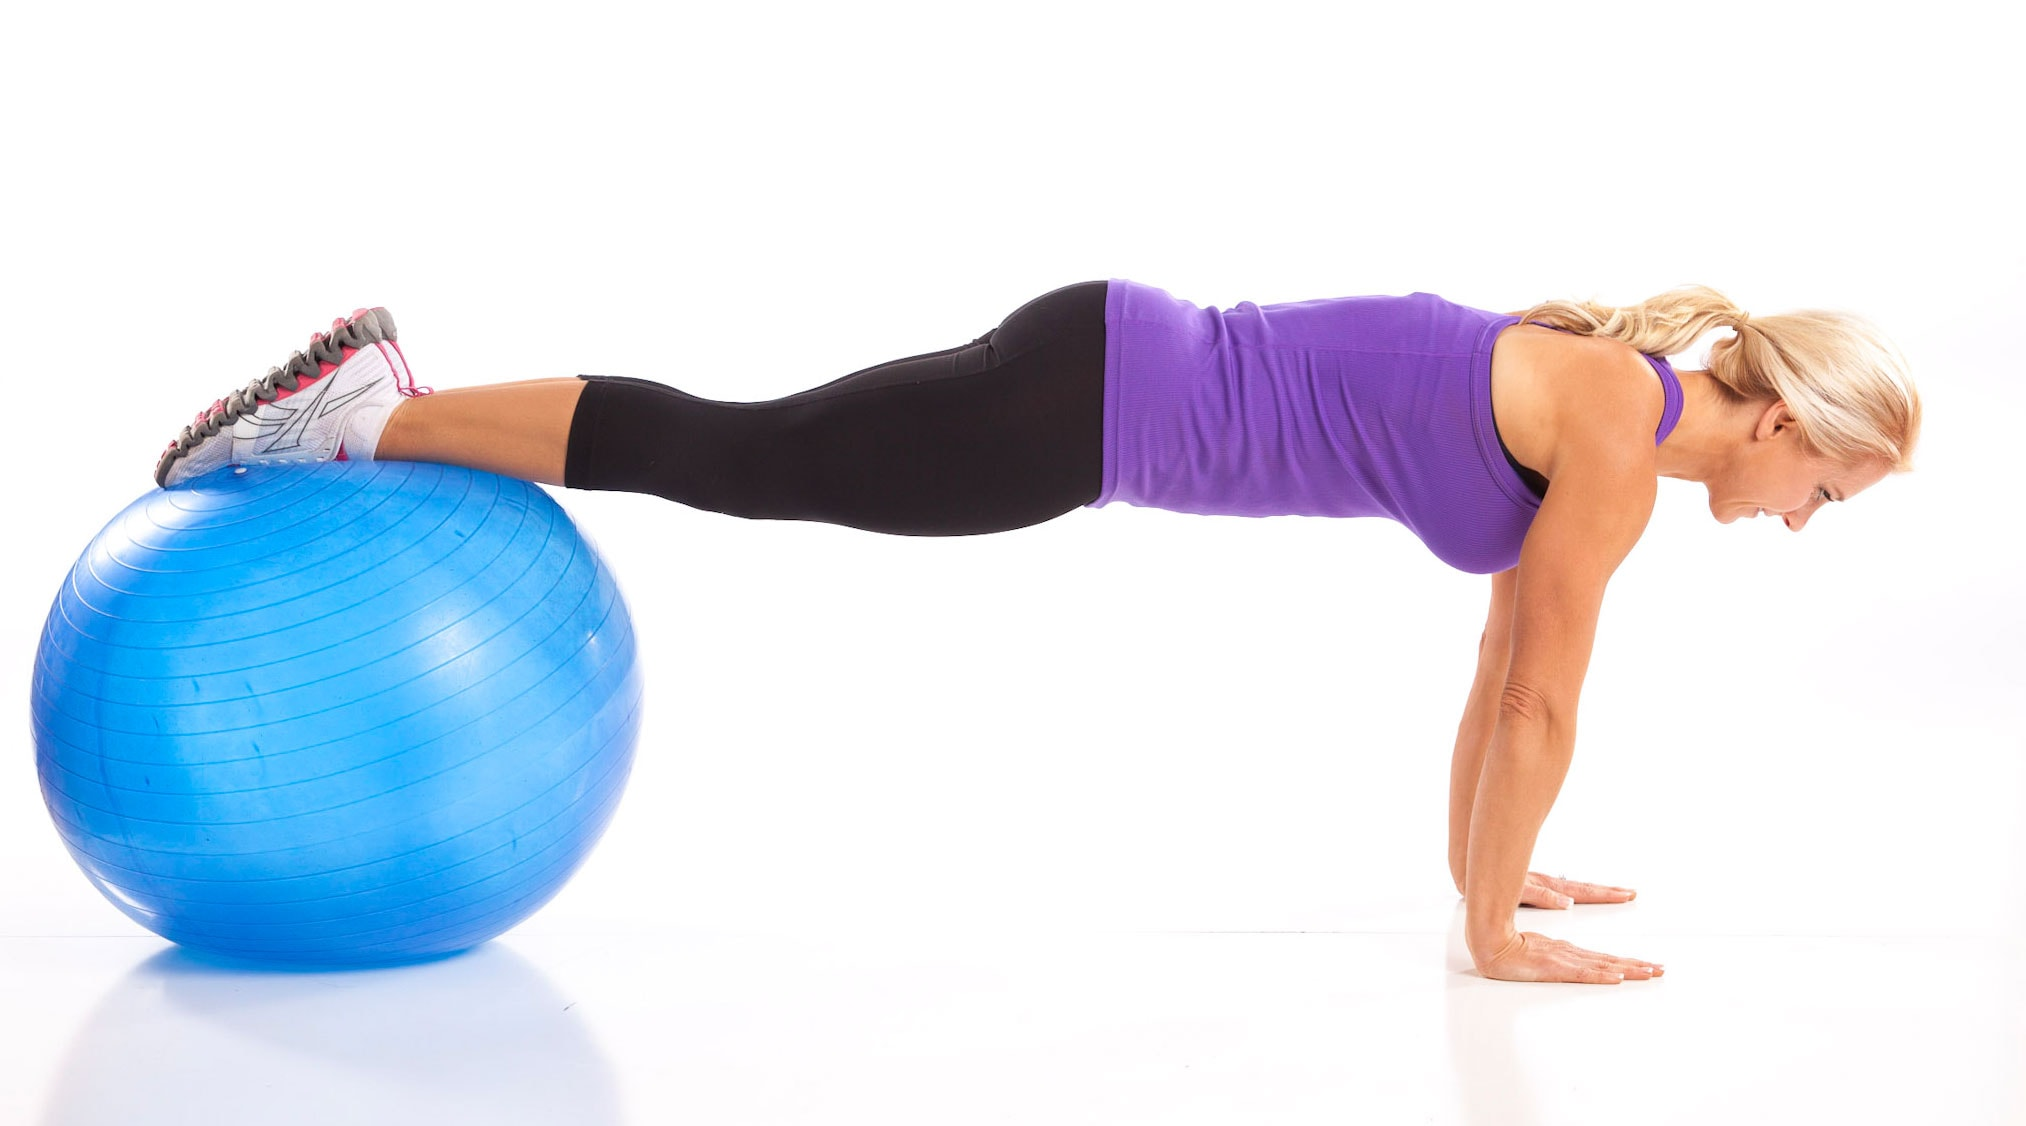 Ball Pike Ups Abs Workout for Women